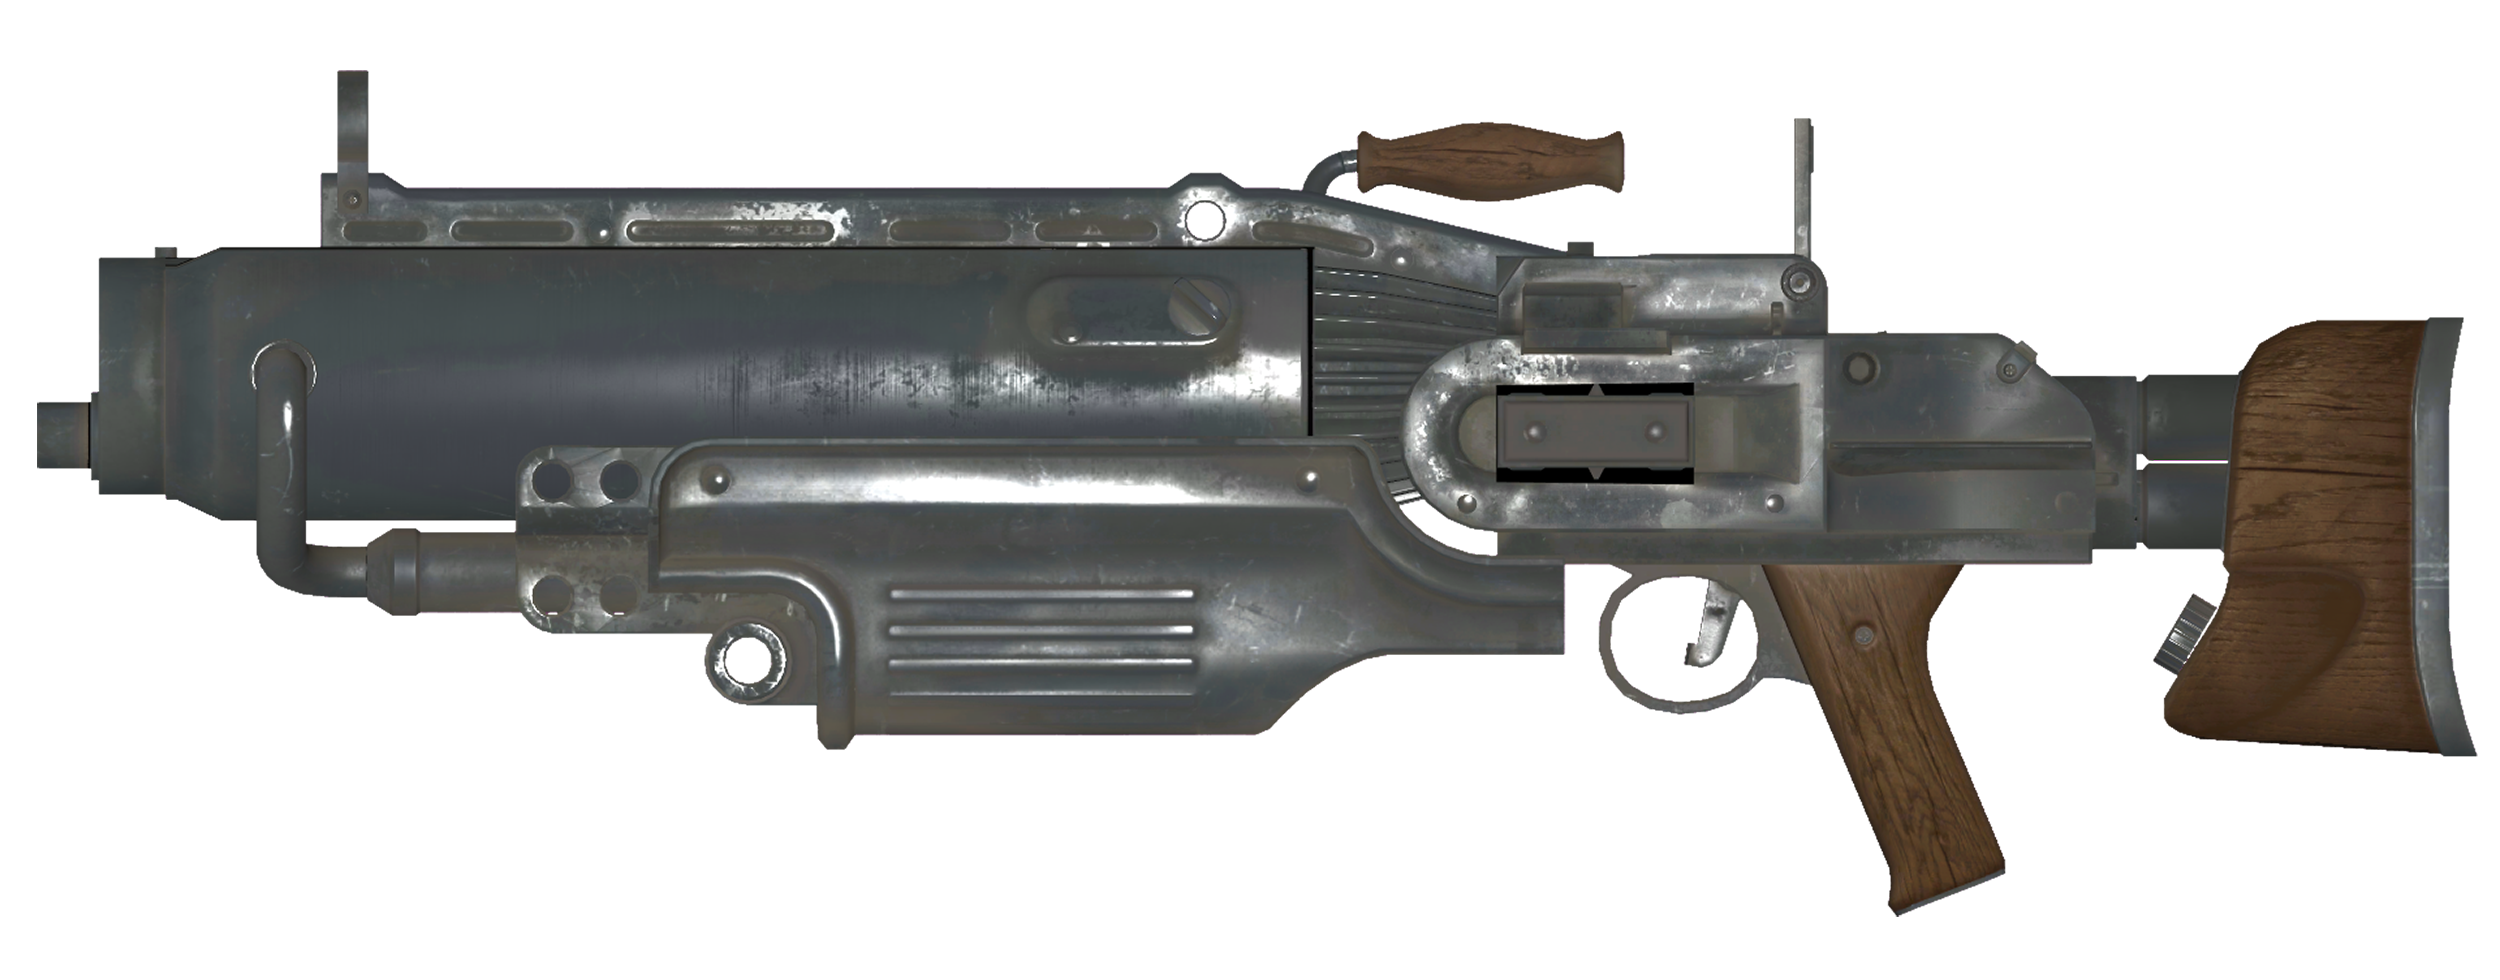 Special T Si >> Assault rifle (Fallout 4) | Fallout Wiki | FANDOM powered by Wikia